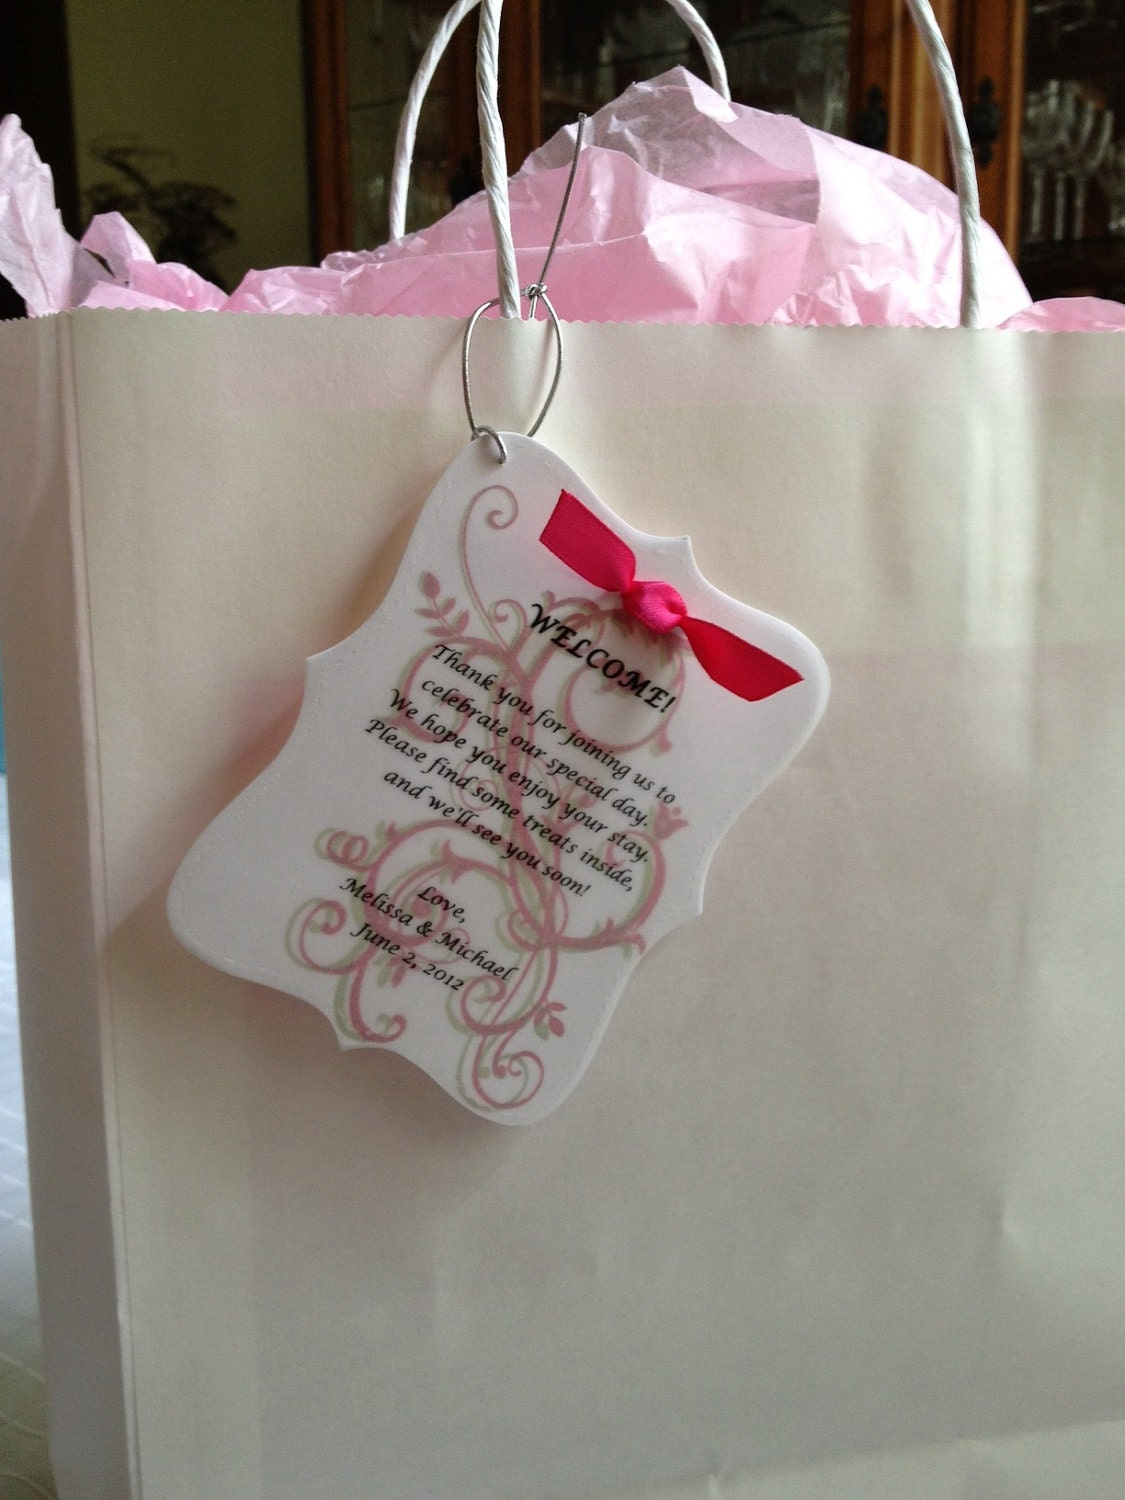 Wedding Hotel Gift Bag Message : Welcome Note Sample for Wedding OOT Hotel Guest Bags